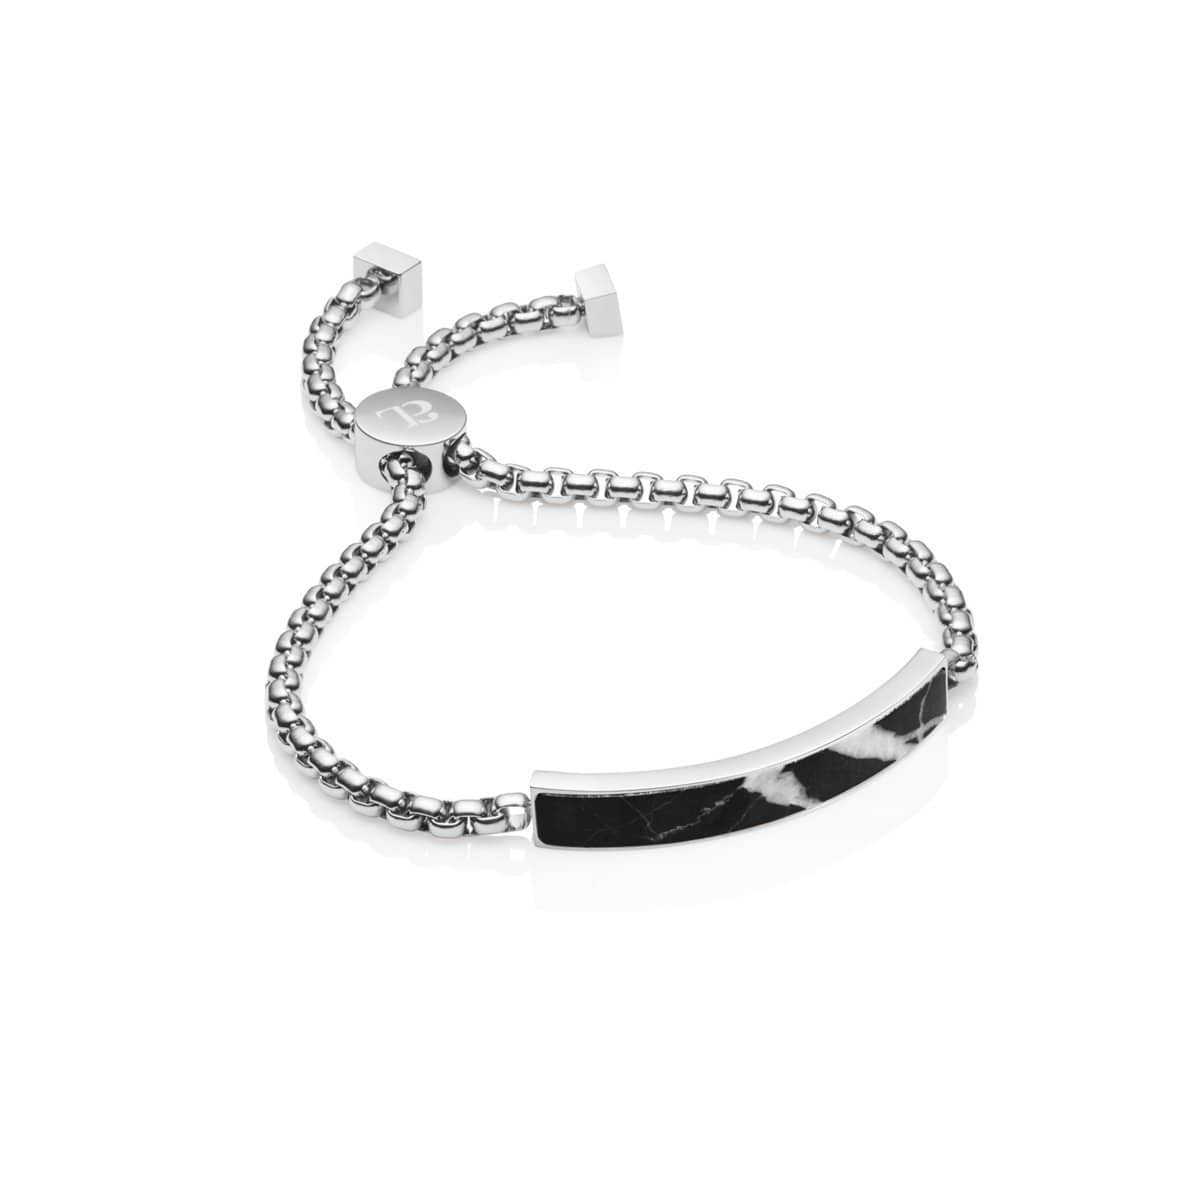 Marble Luxe Chain Bracelet (Silver/Black)